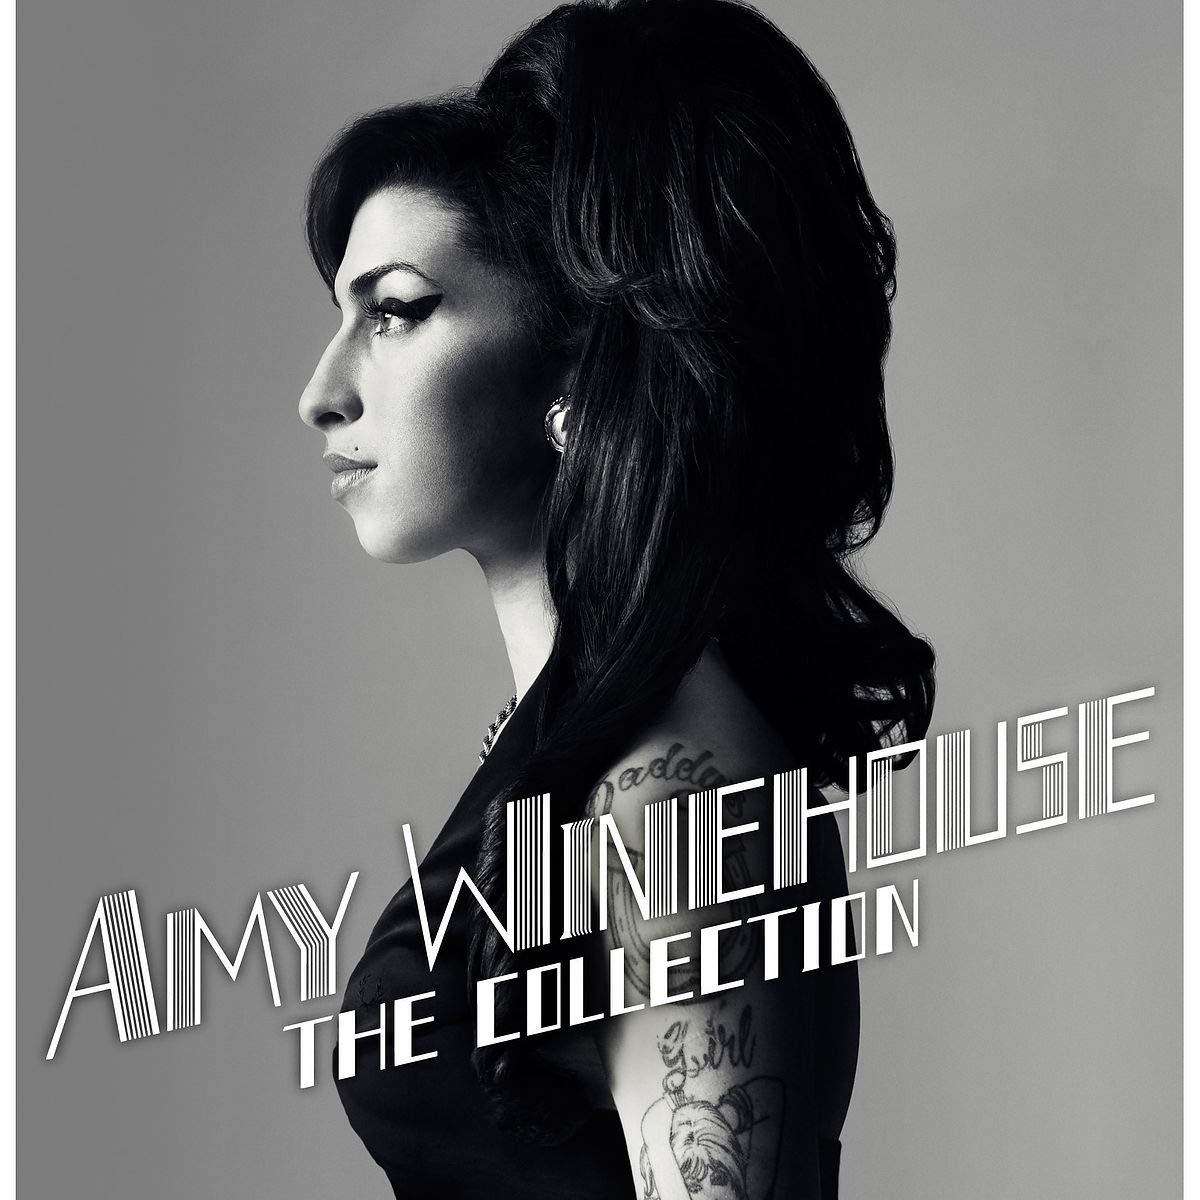 Amy Winehouse – The Collection (2020) [FLAC]